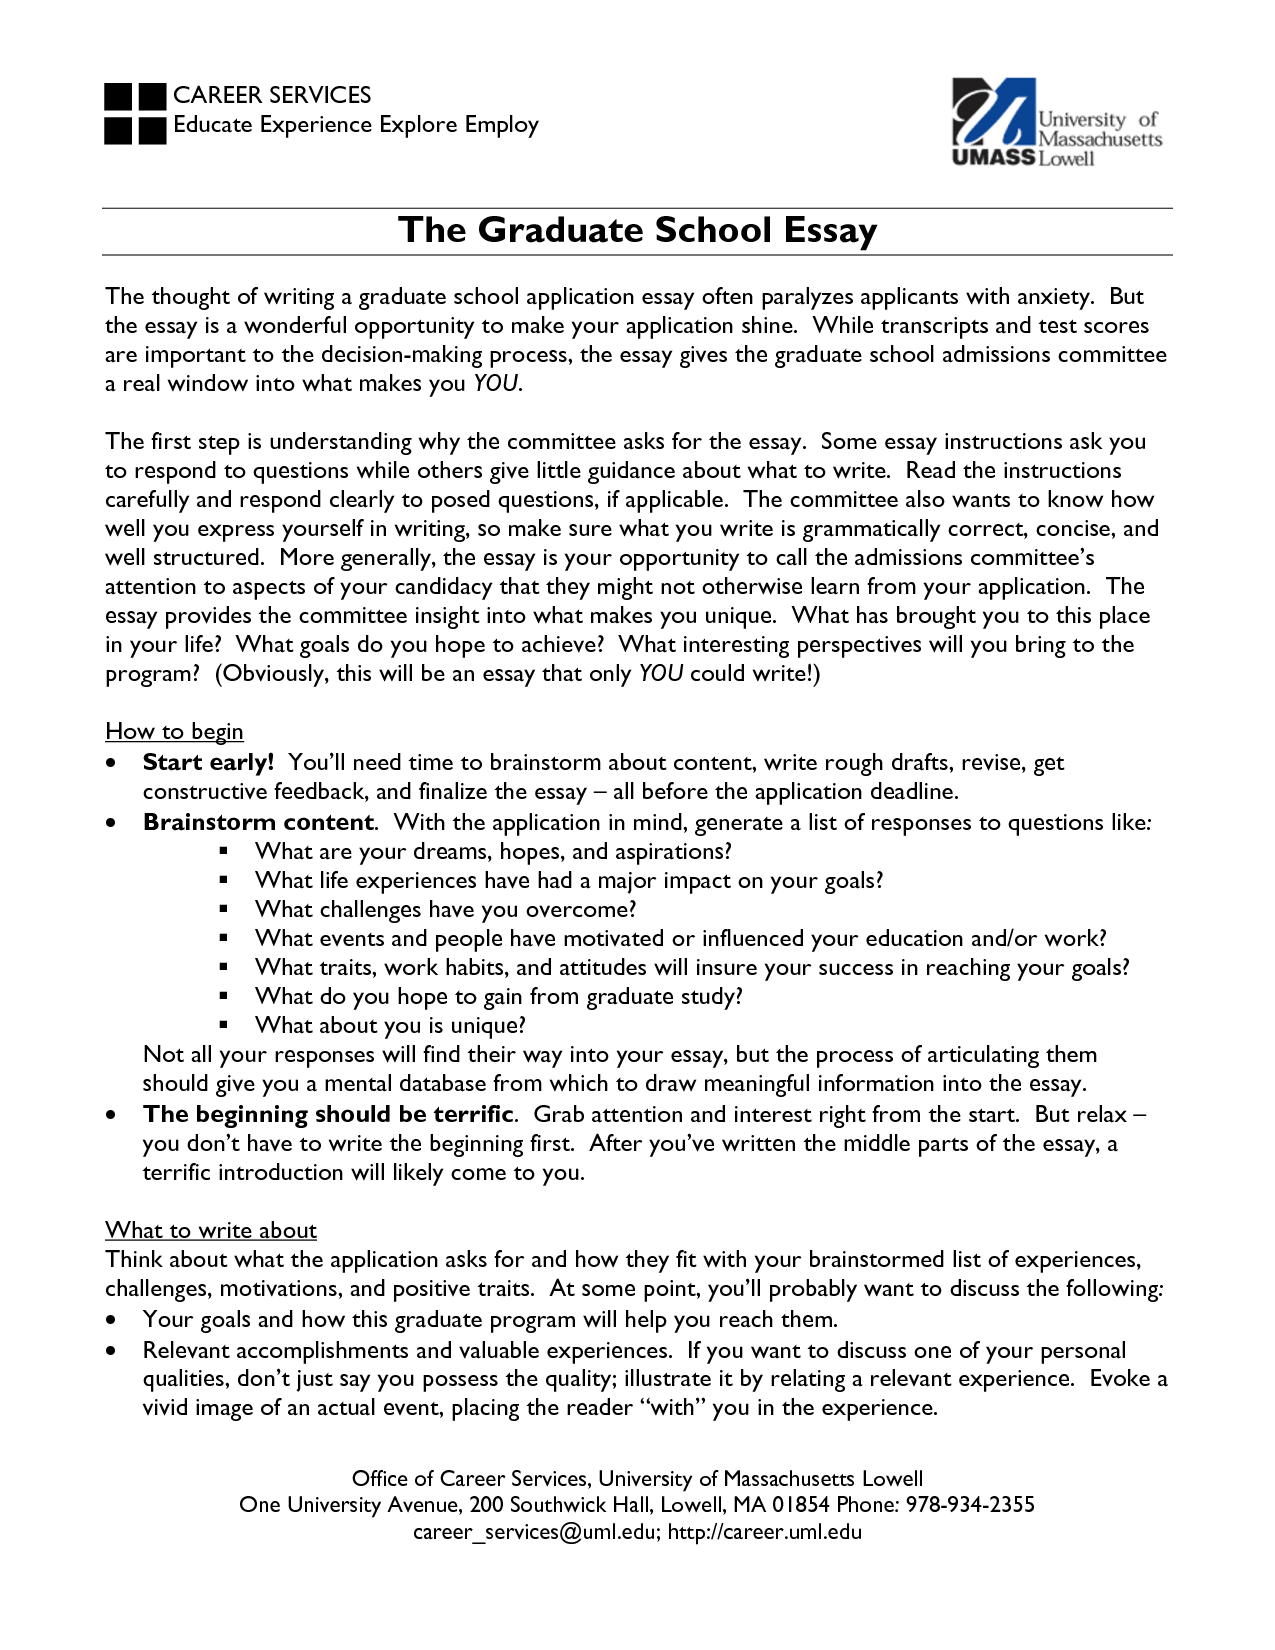 How to write an application essay for graduate school